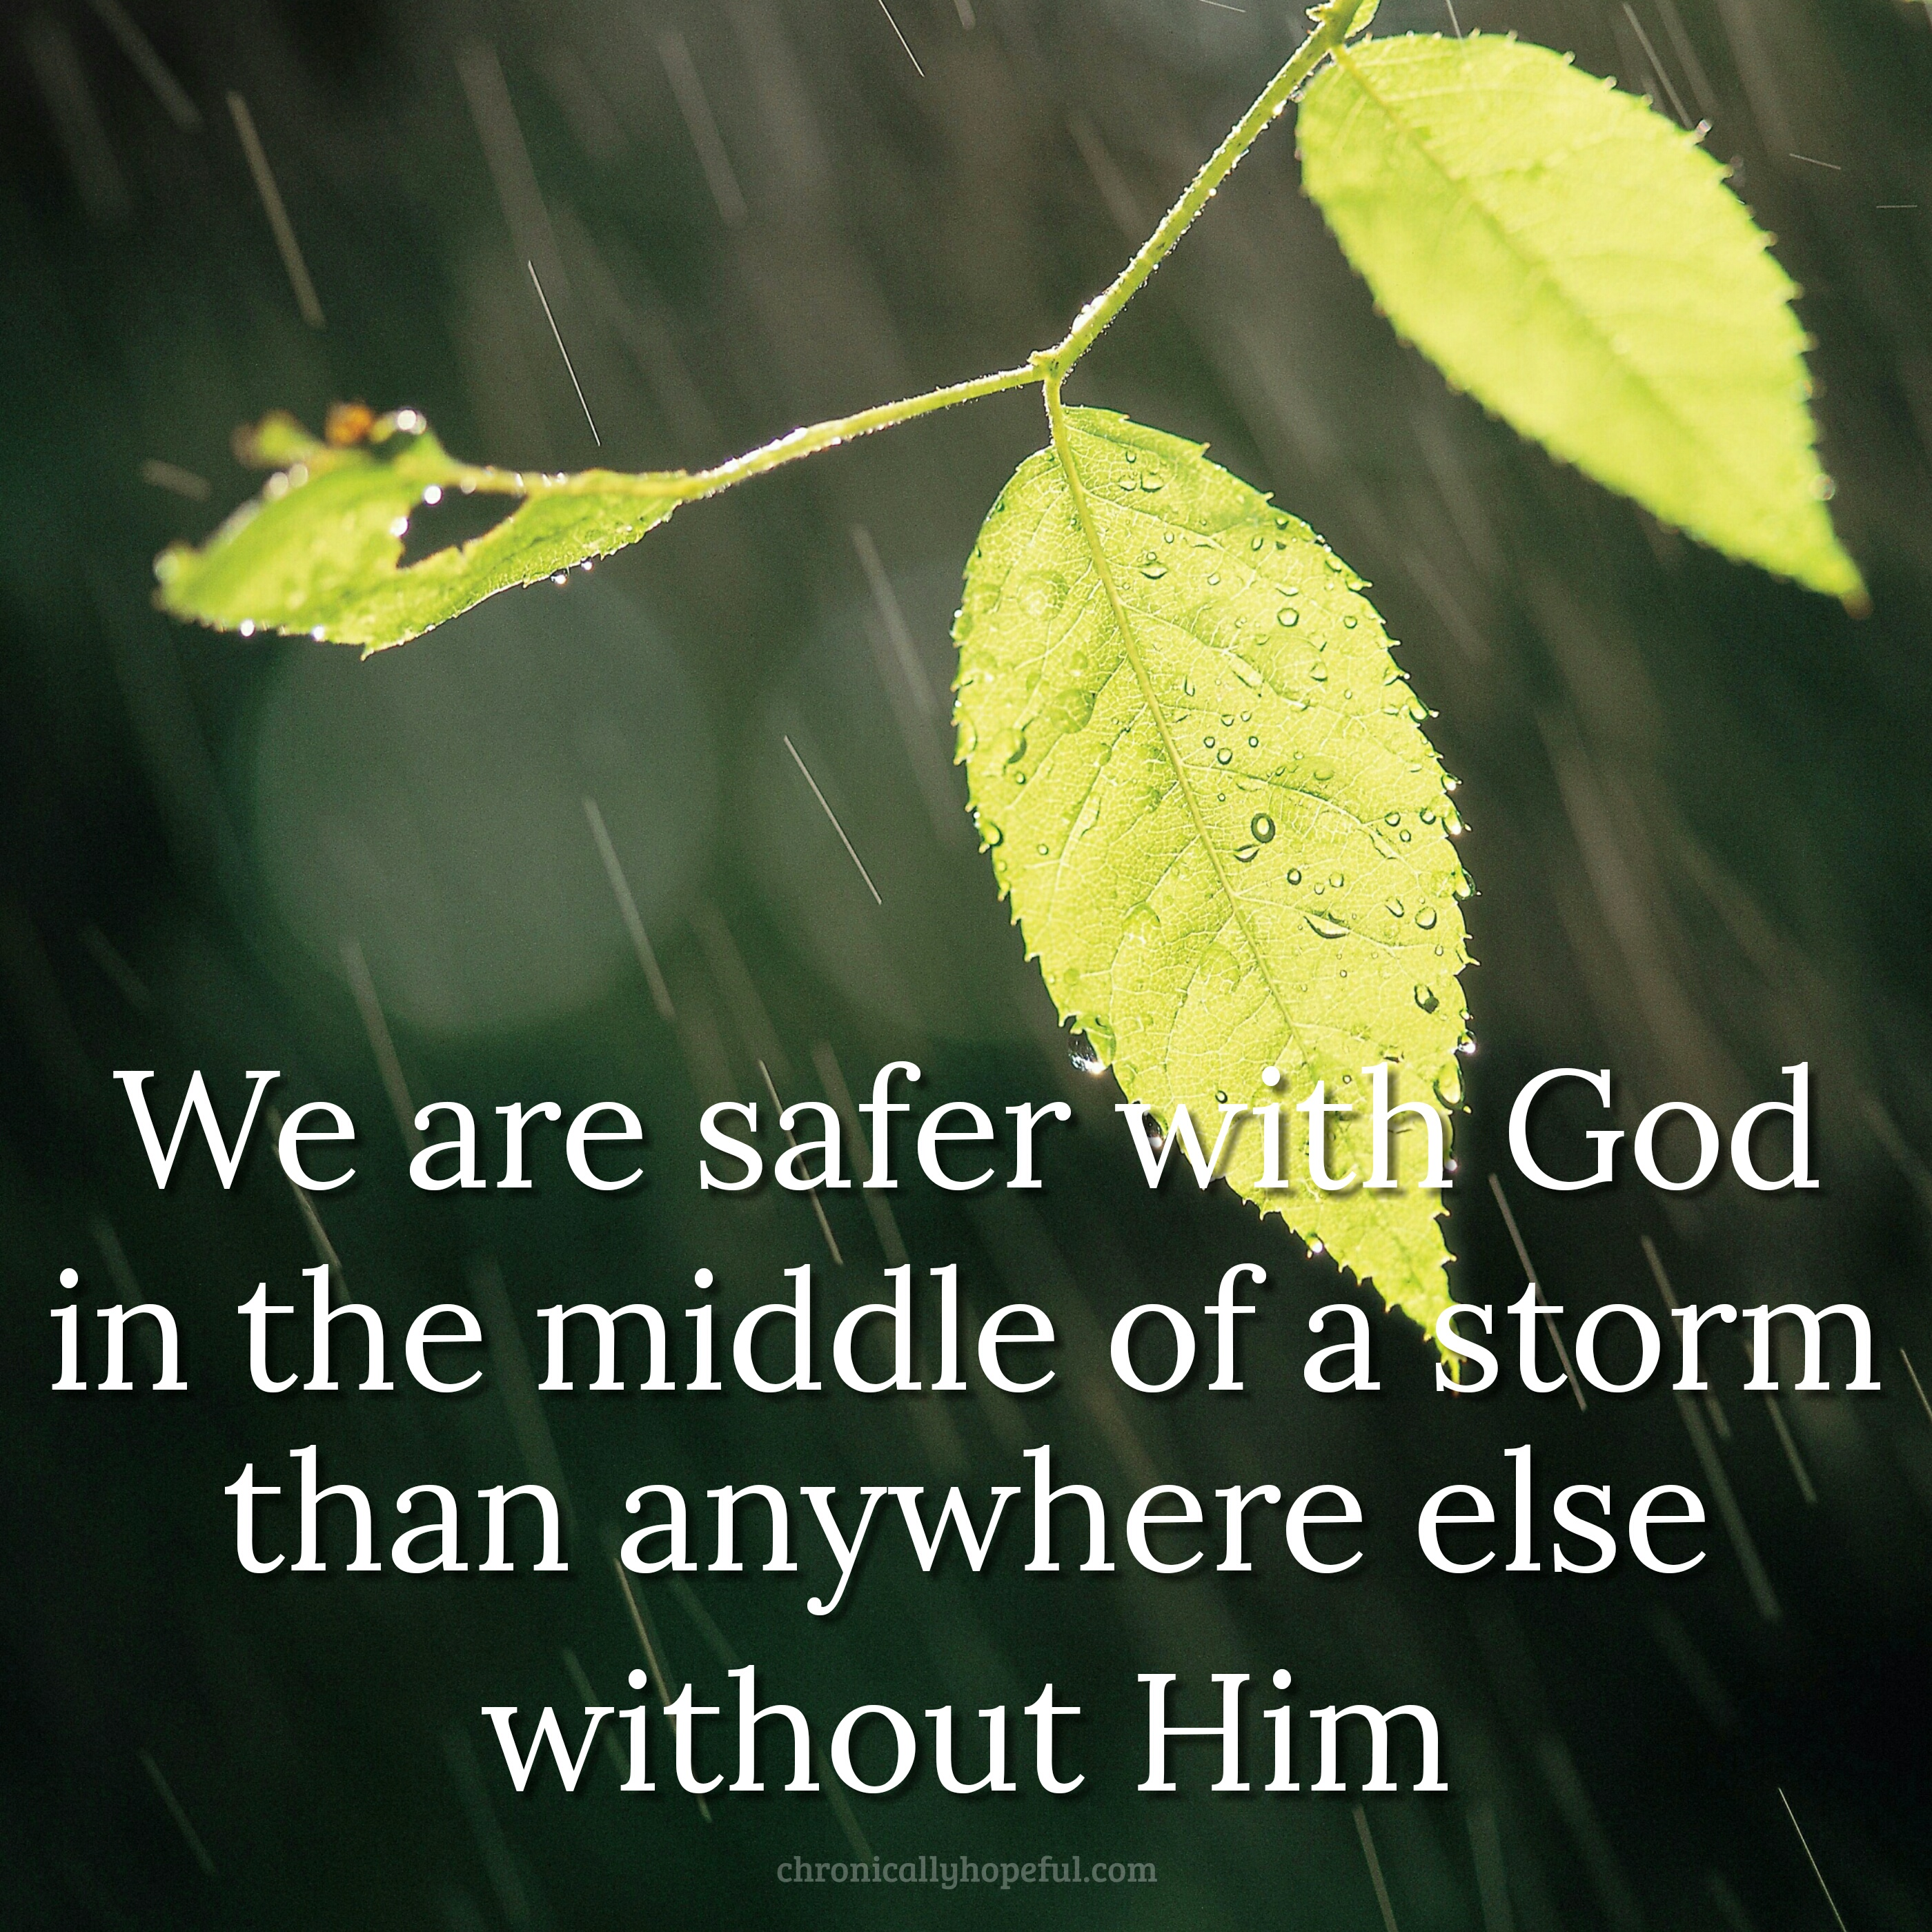 Leaved in a rain storm. Quote reads, We are safer with God in the middle of a storm than anywhere else without him.